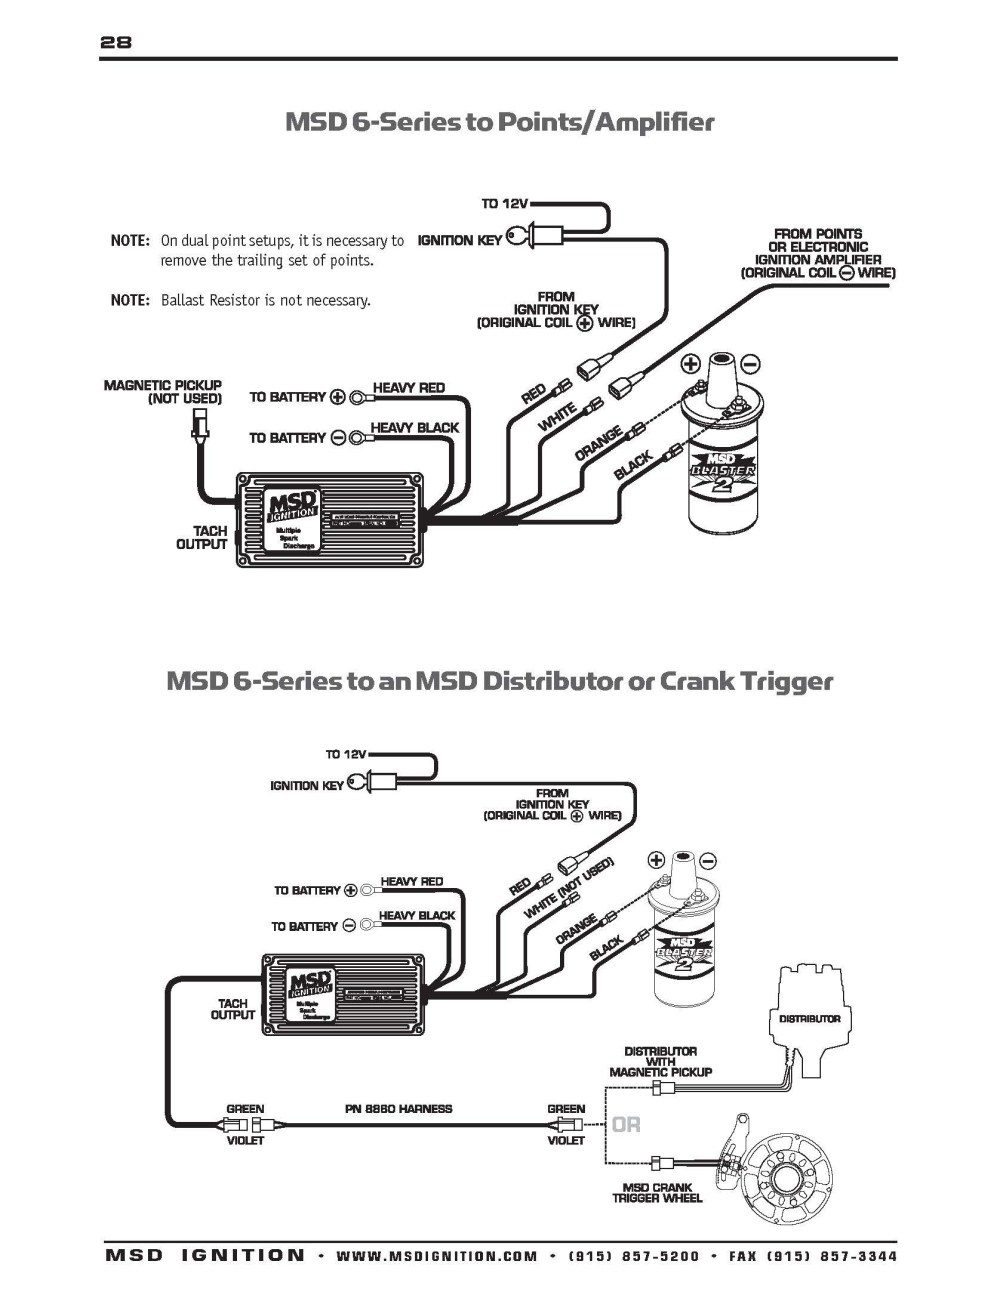 medium resolution of wiring diagram for and accel distributor mallory ignition throughout accel ceramic spark plug wires collection accel distributor wiring diagram pictures